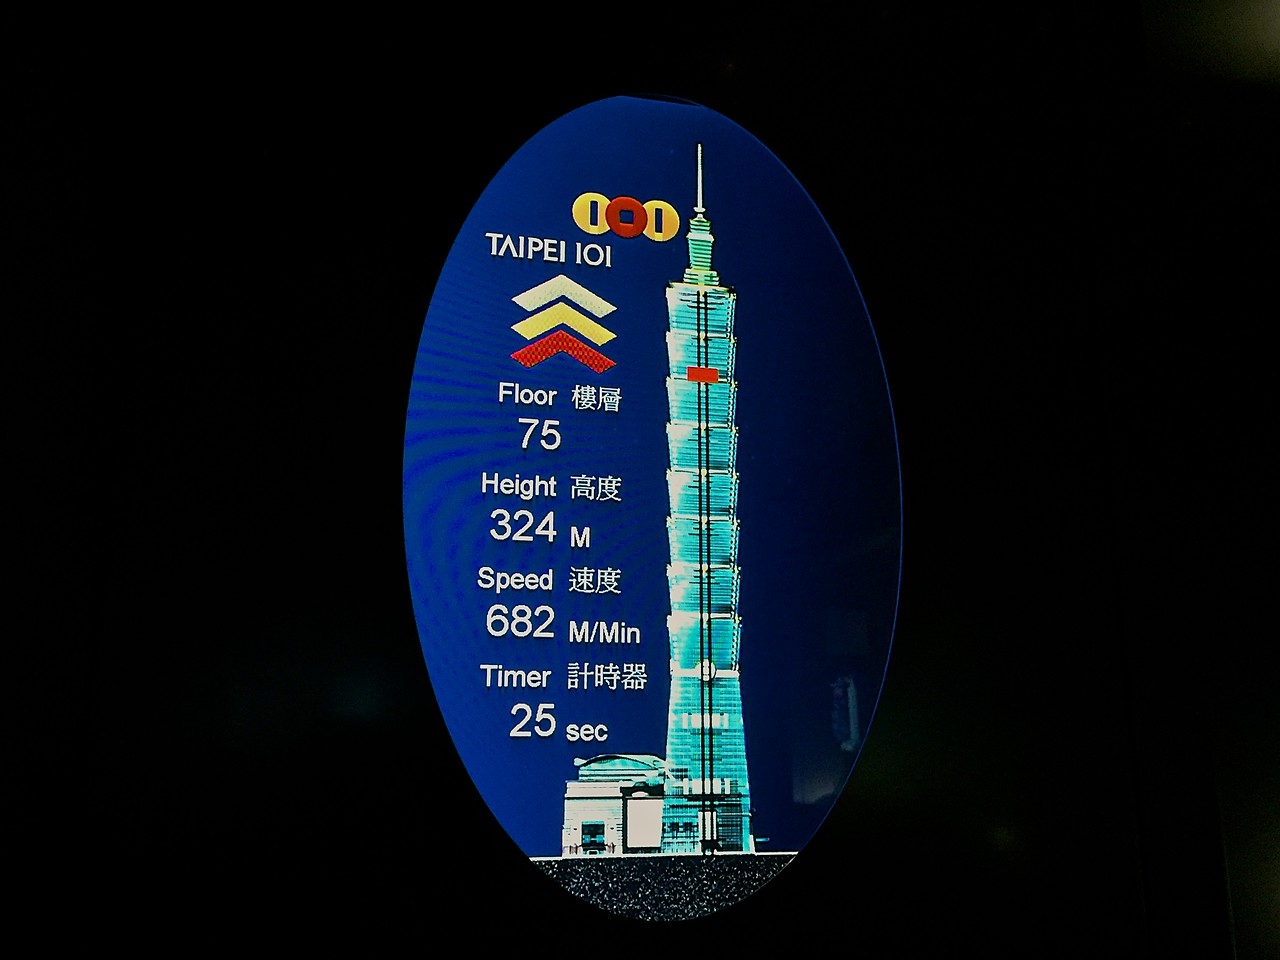 Taipei 101's elevators sweep visitors from the fifth floor to the 89th-floor observatory in only 37 seconds. Each elevator features an aerodynamic body, full pressurization, state-of-the art emergency braking systems, and the world's first triple-stage anti-overshooting system.